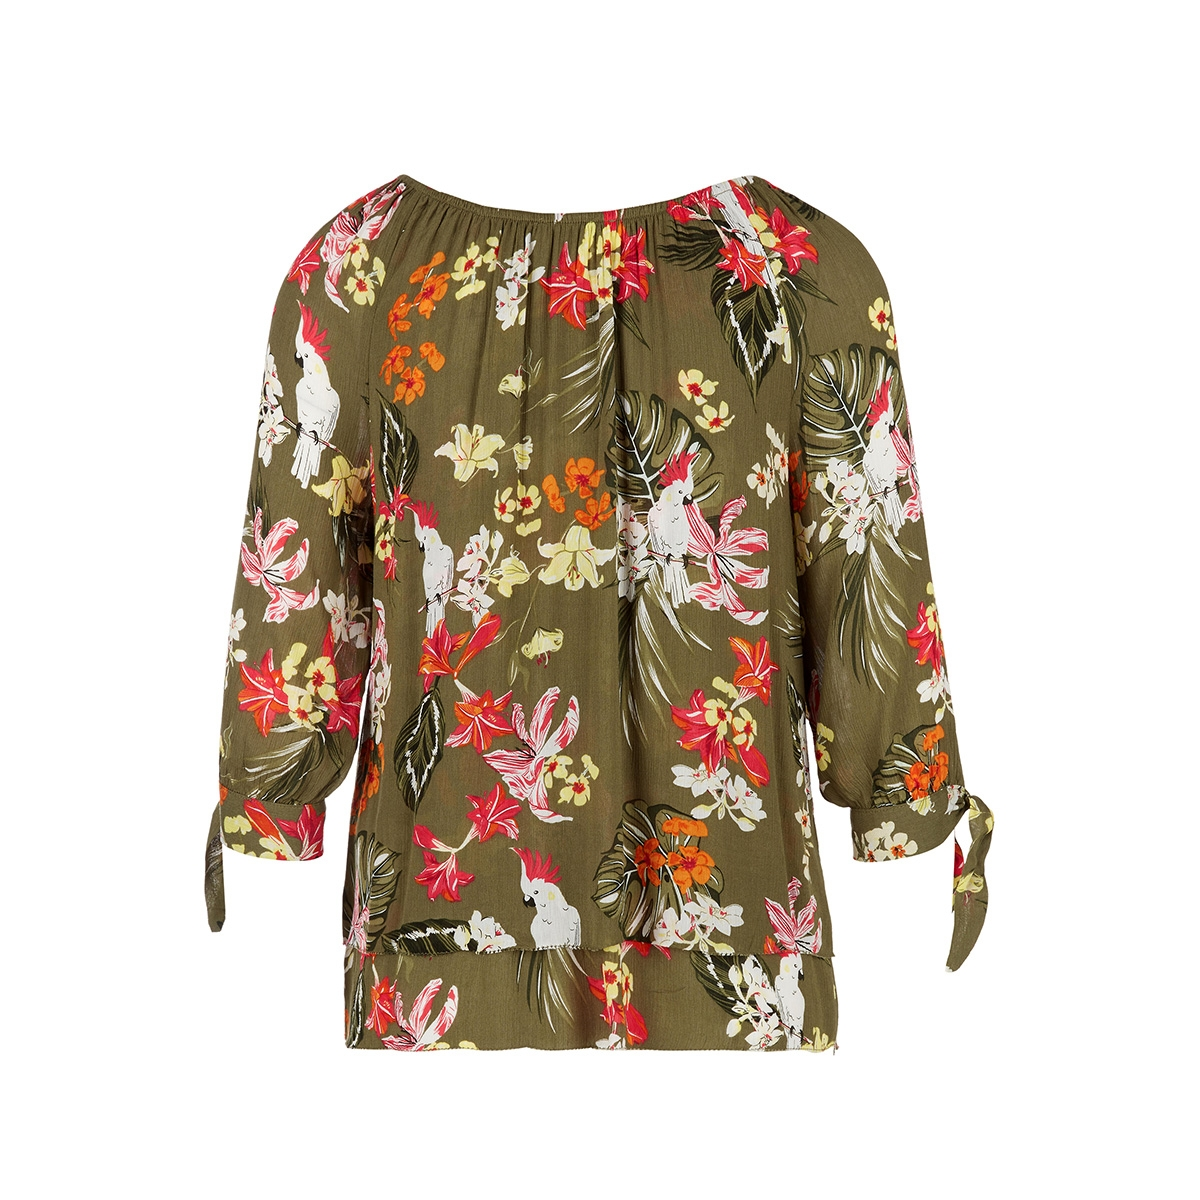 blouse met carmenhals in laagjeslook 14004195441 s.oliver blouse 78a1